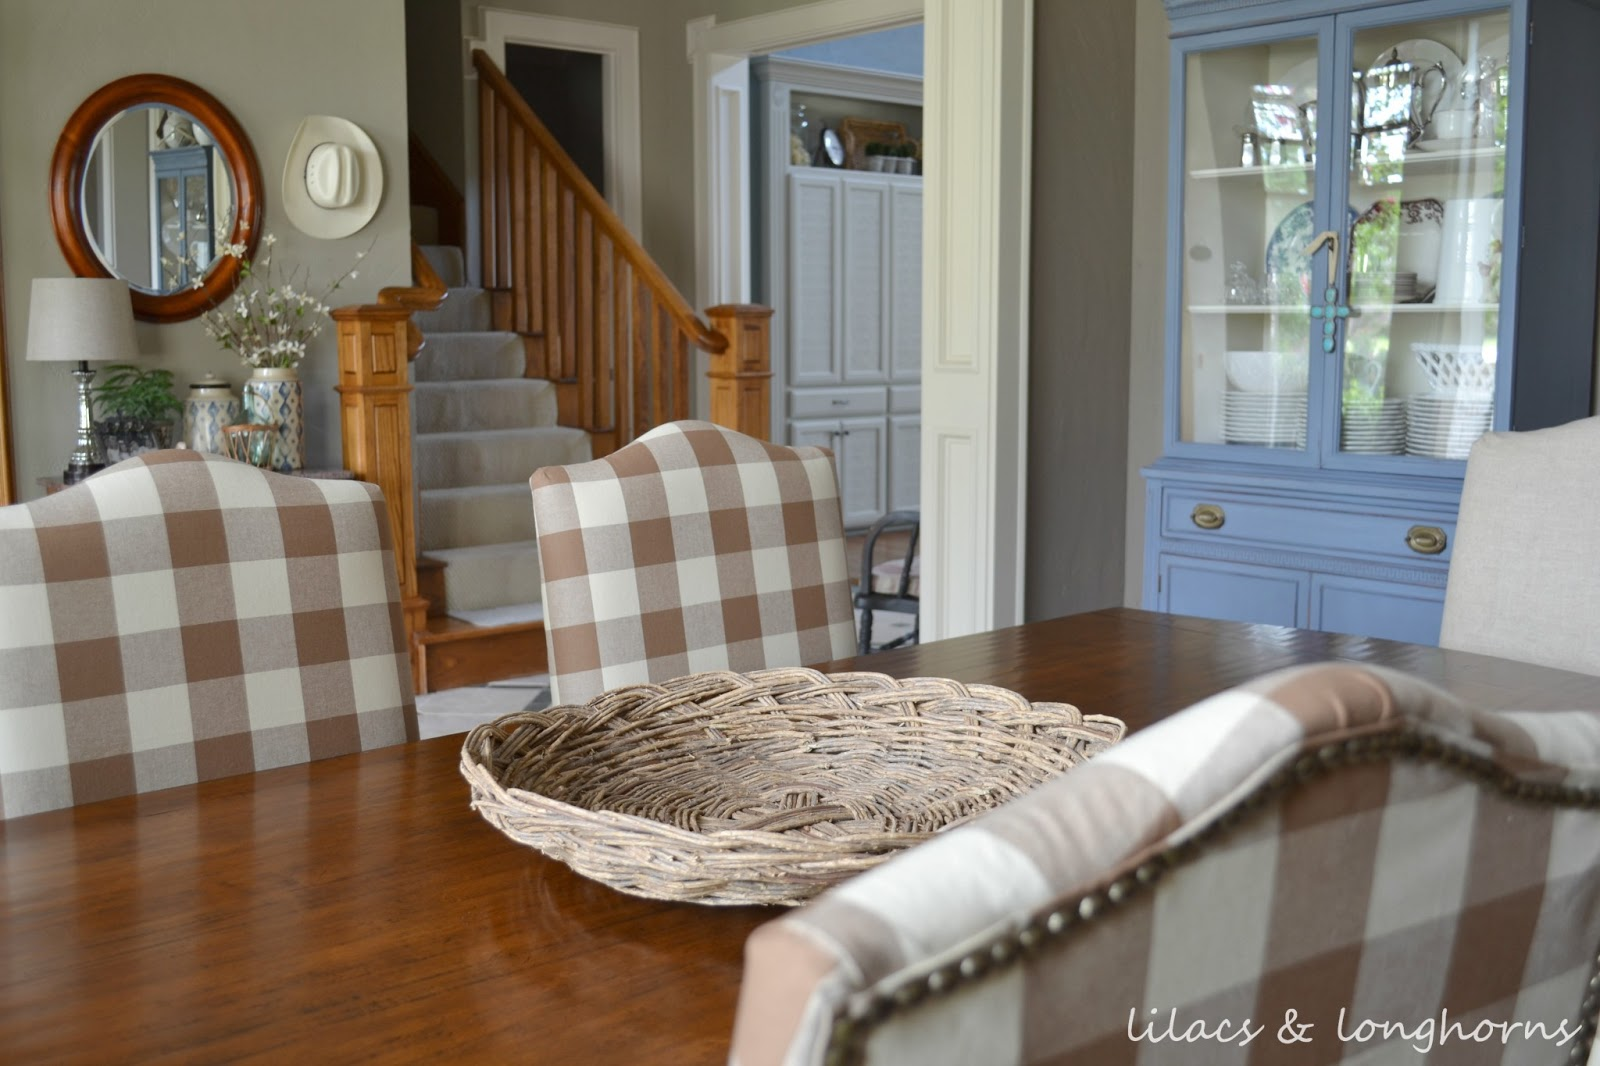 Reupholstered Dining Room Chairs From Julie At Lilacs Longhorns